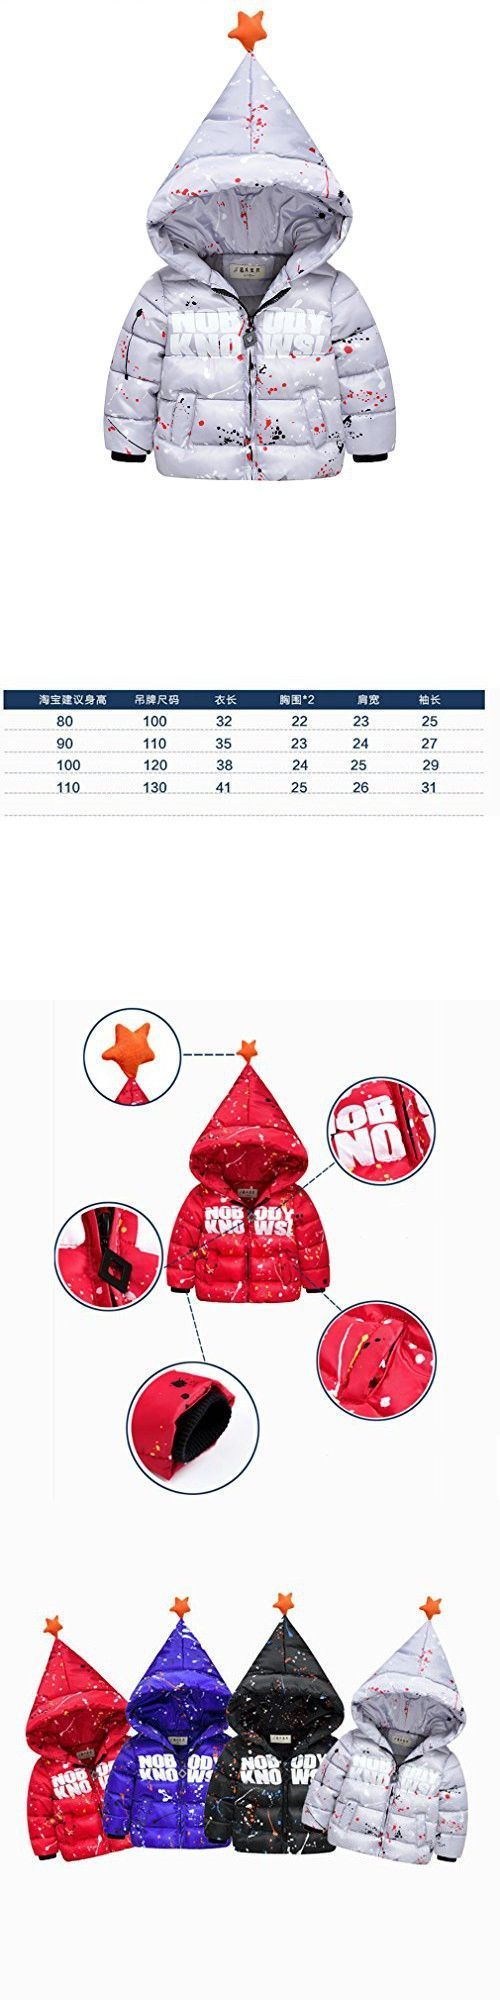 Iumer Winter Baby Girl Coat Toddler Jacket Outwear Cotton Padded Jacket Baby Ultra-light Down Jackets Gray #babygirljackets #babyjackets